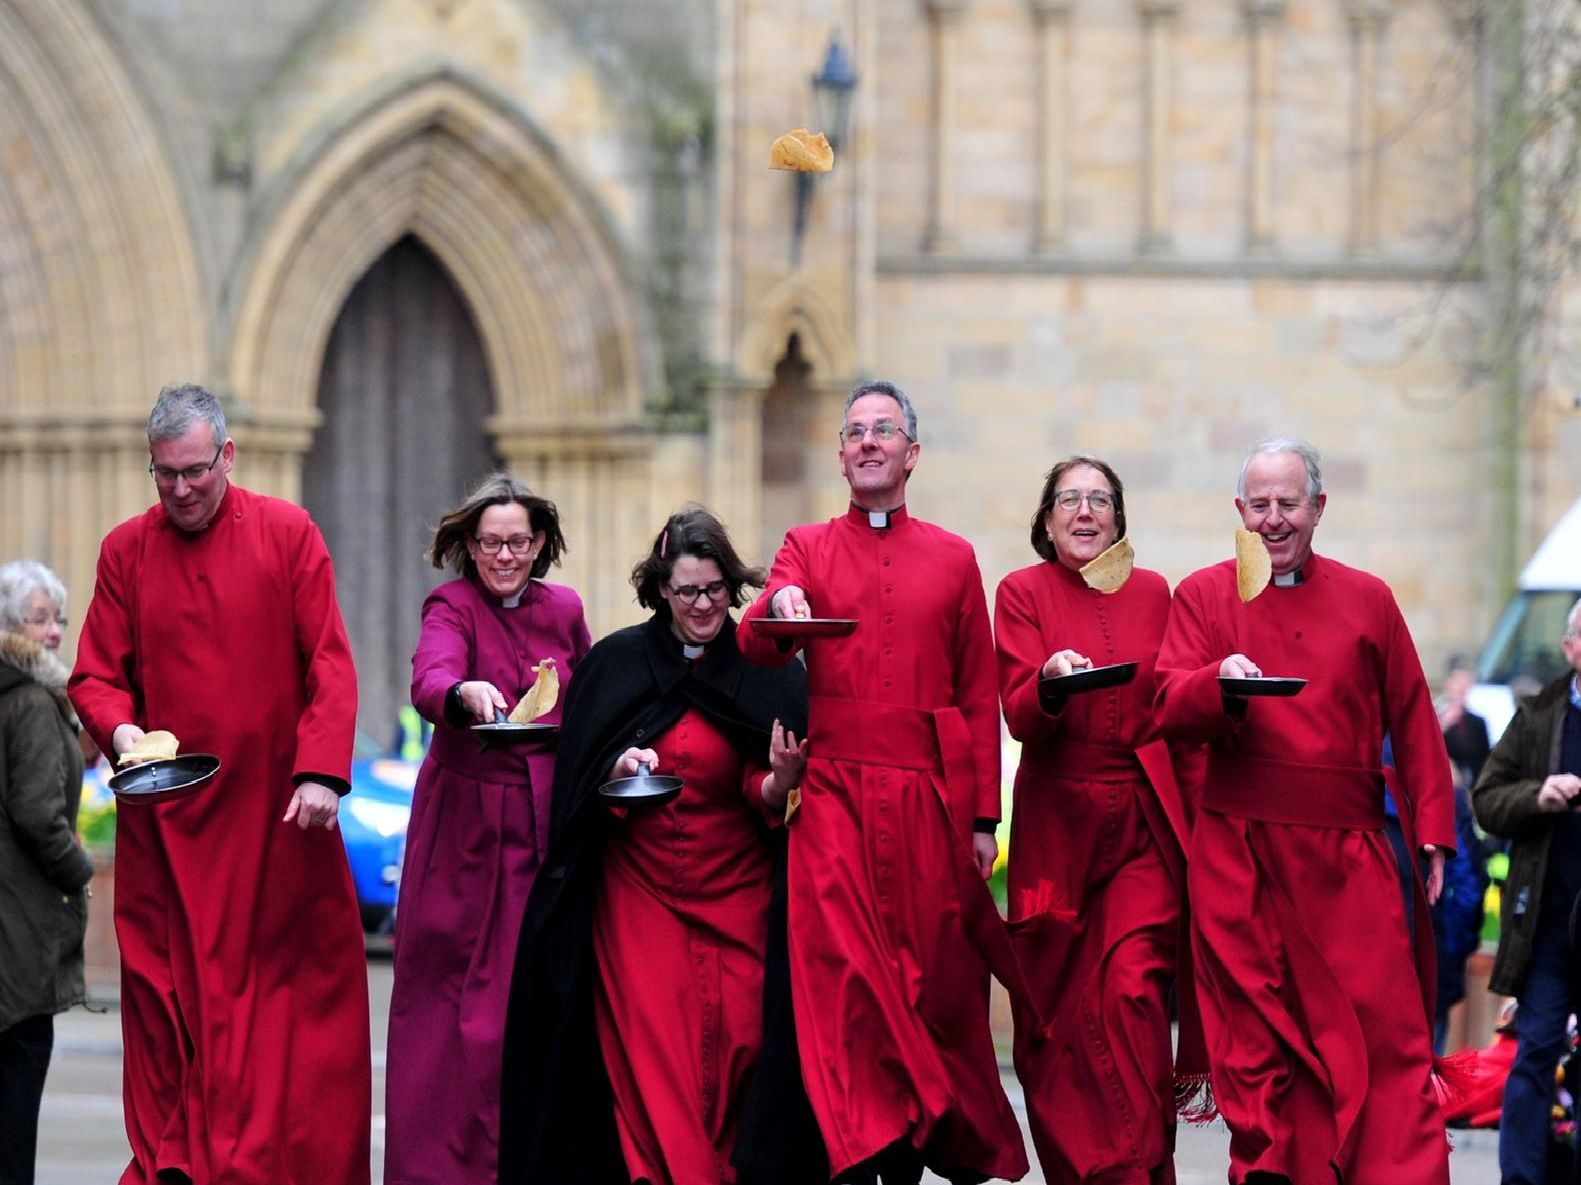 The Dean of Ripon, the Very Rev John Dobson, the Bishop of Ripon, the Rt Rev Dr Helen-Ann Hartley, and members of the Ripon Cathedral clergy team. Picture: Picture Gerard Binks.